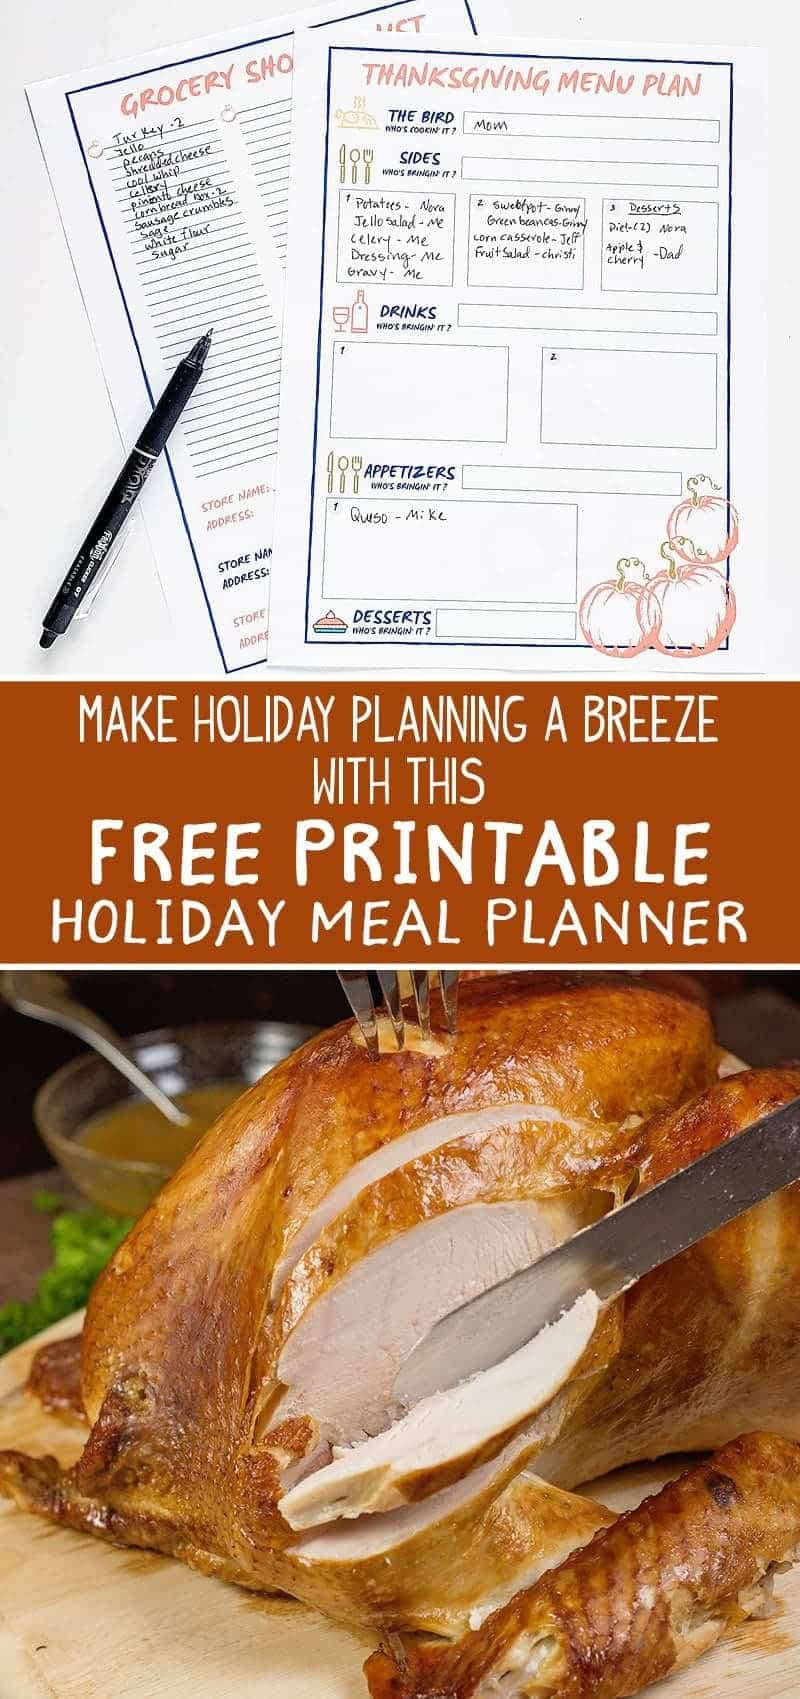 How to Have an Awesomely Organized Thanksgiving Dinner (+ FREE Thanksgiving Planner)